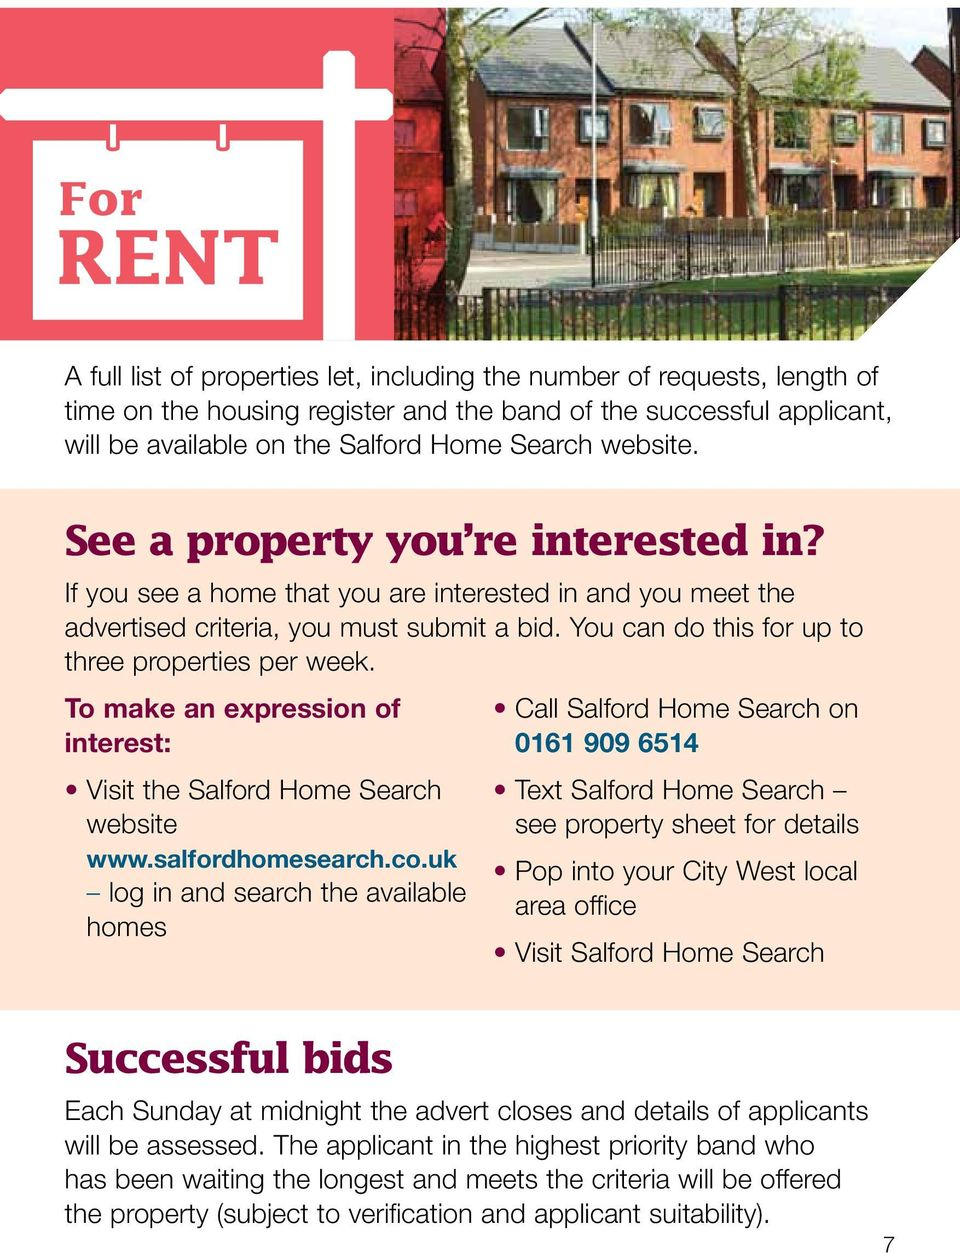 To make an expression of interest: Visit the Salford Home Search website www.salfordhomesearch.co.